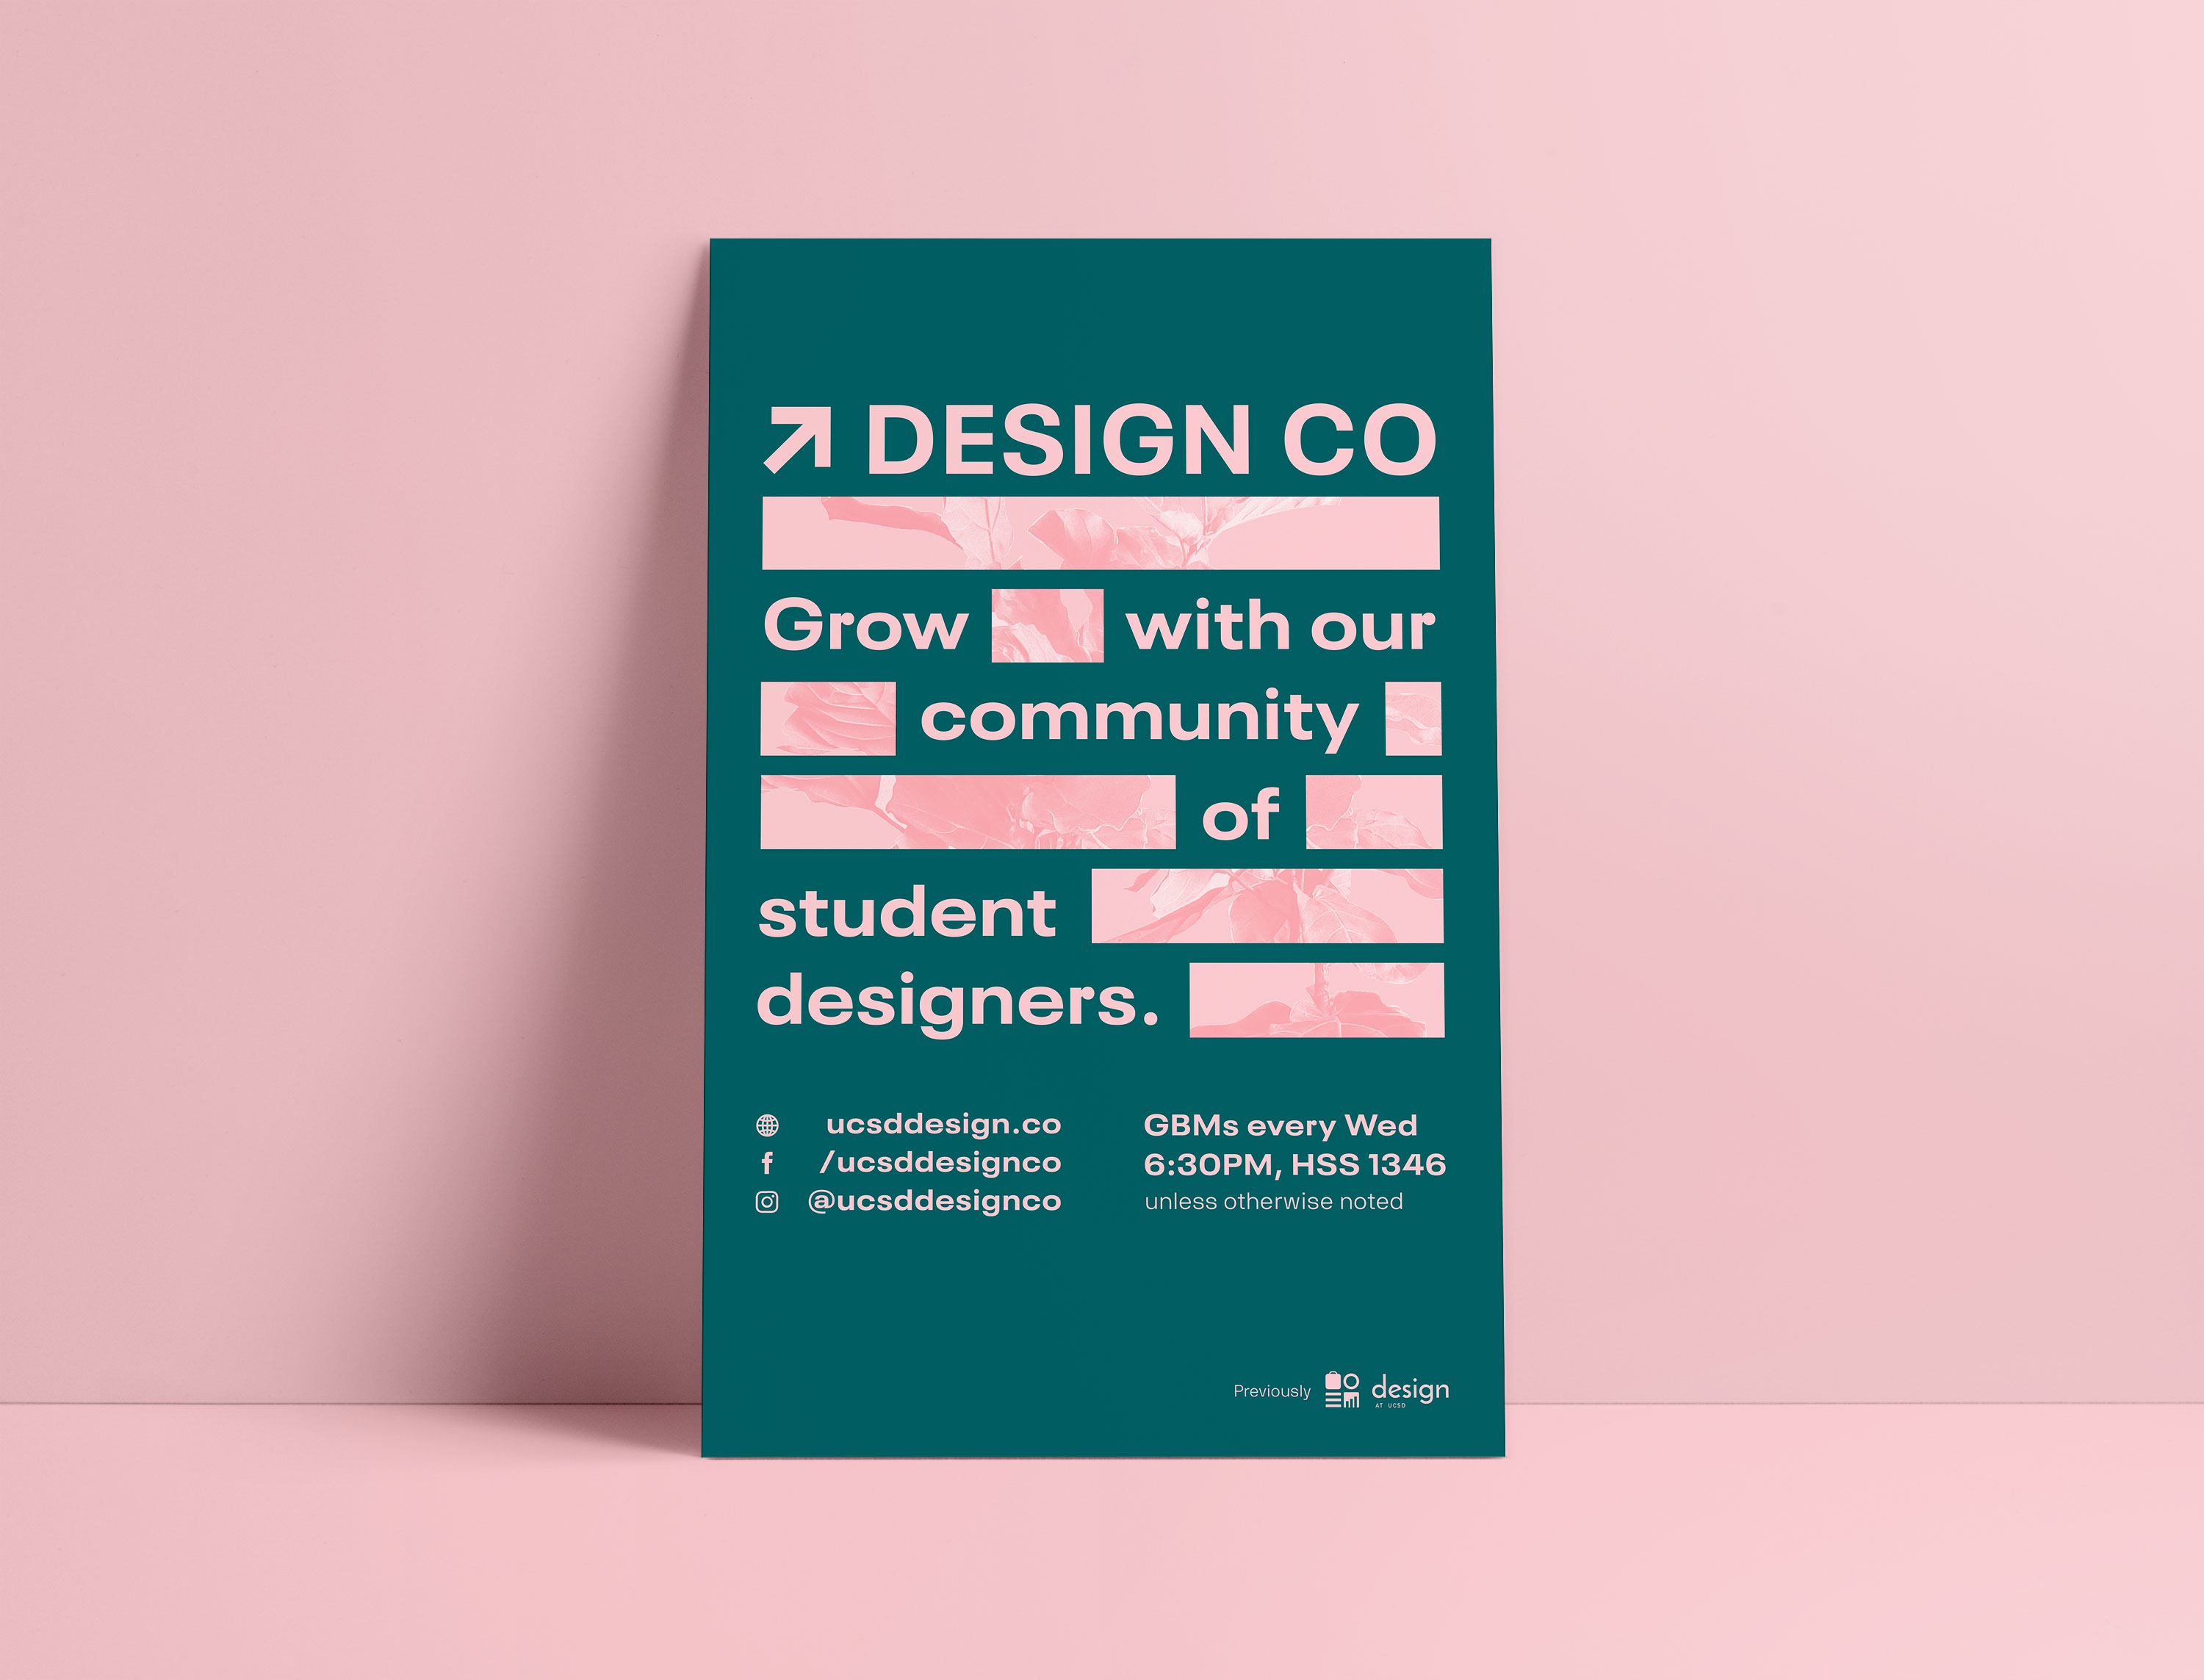 Design Co green + pink poster